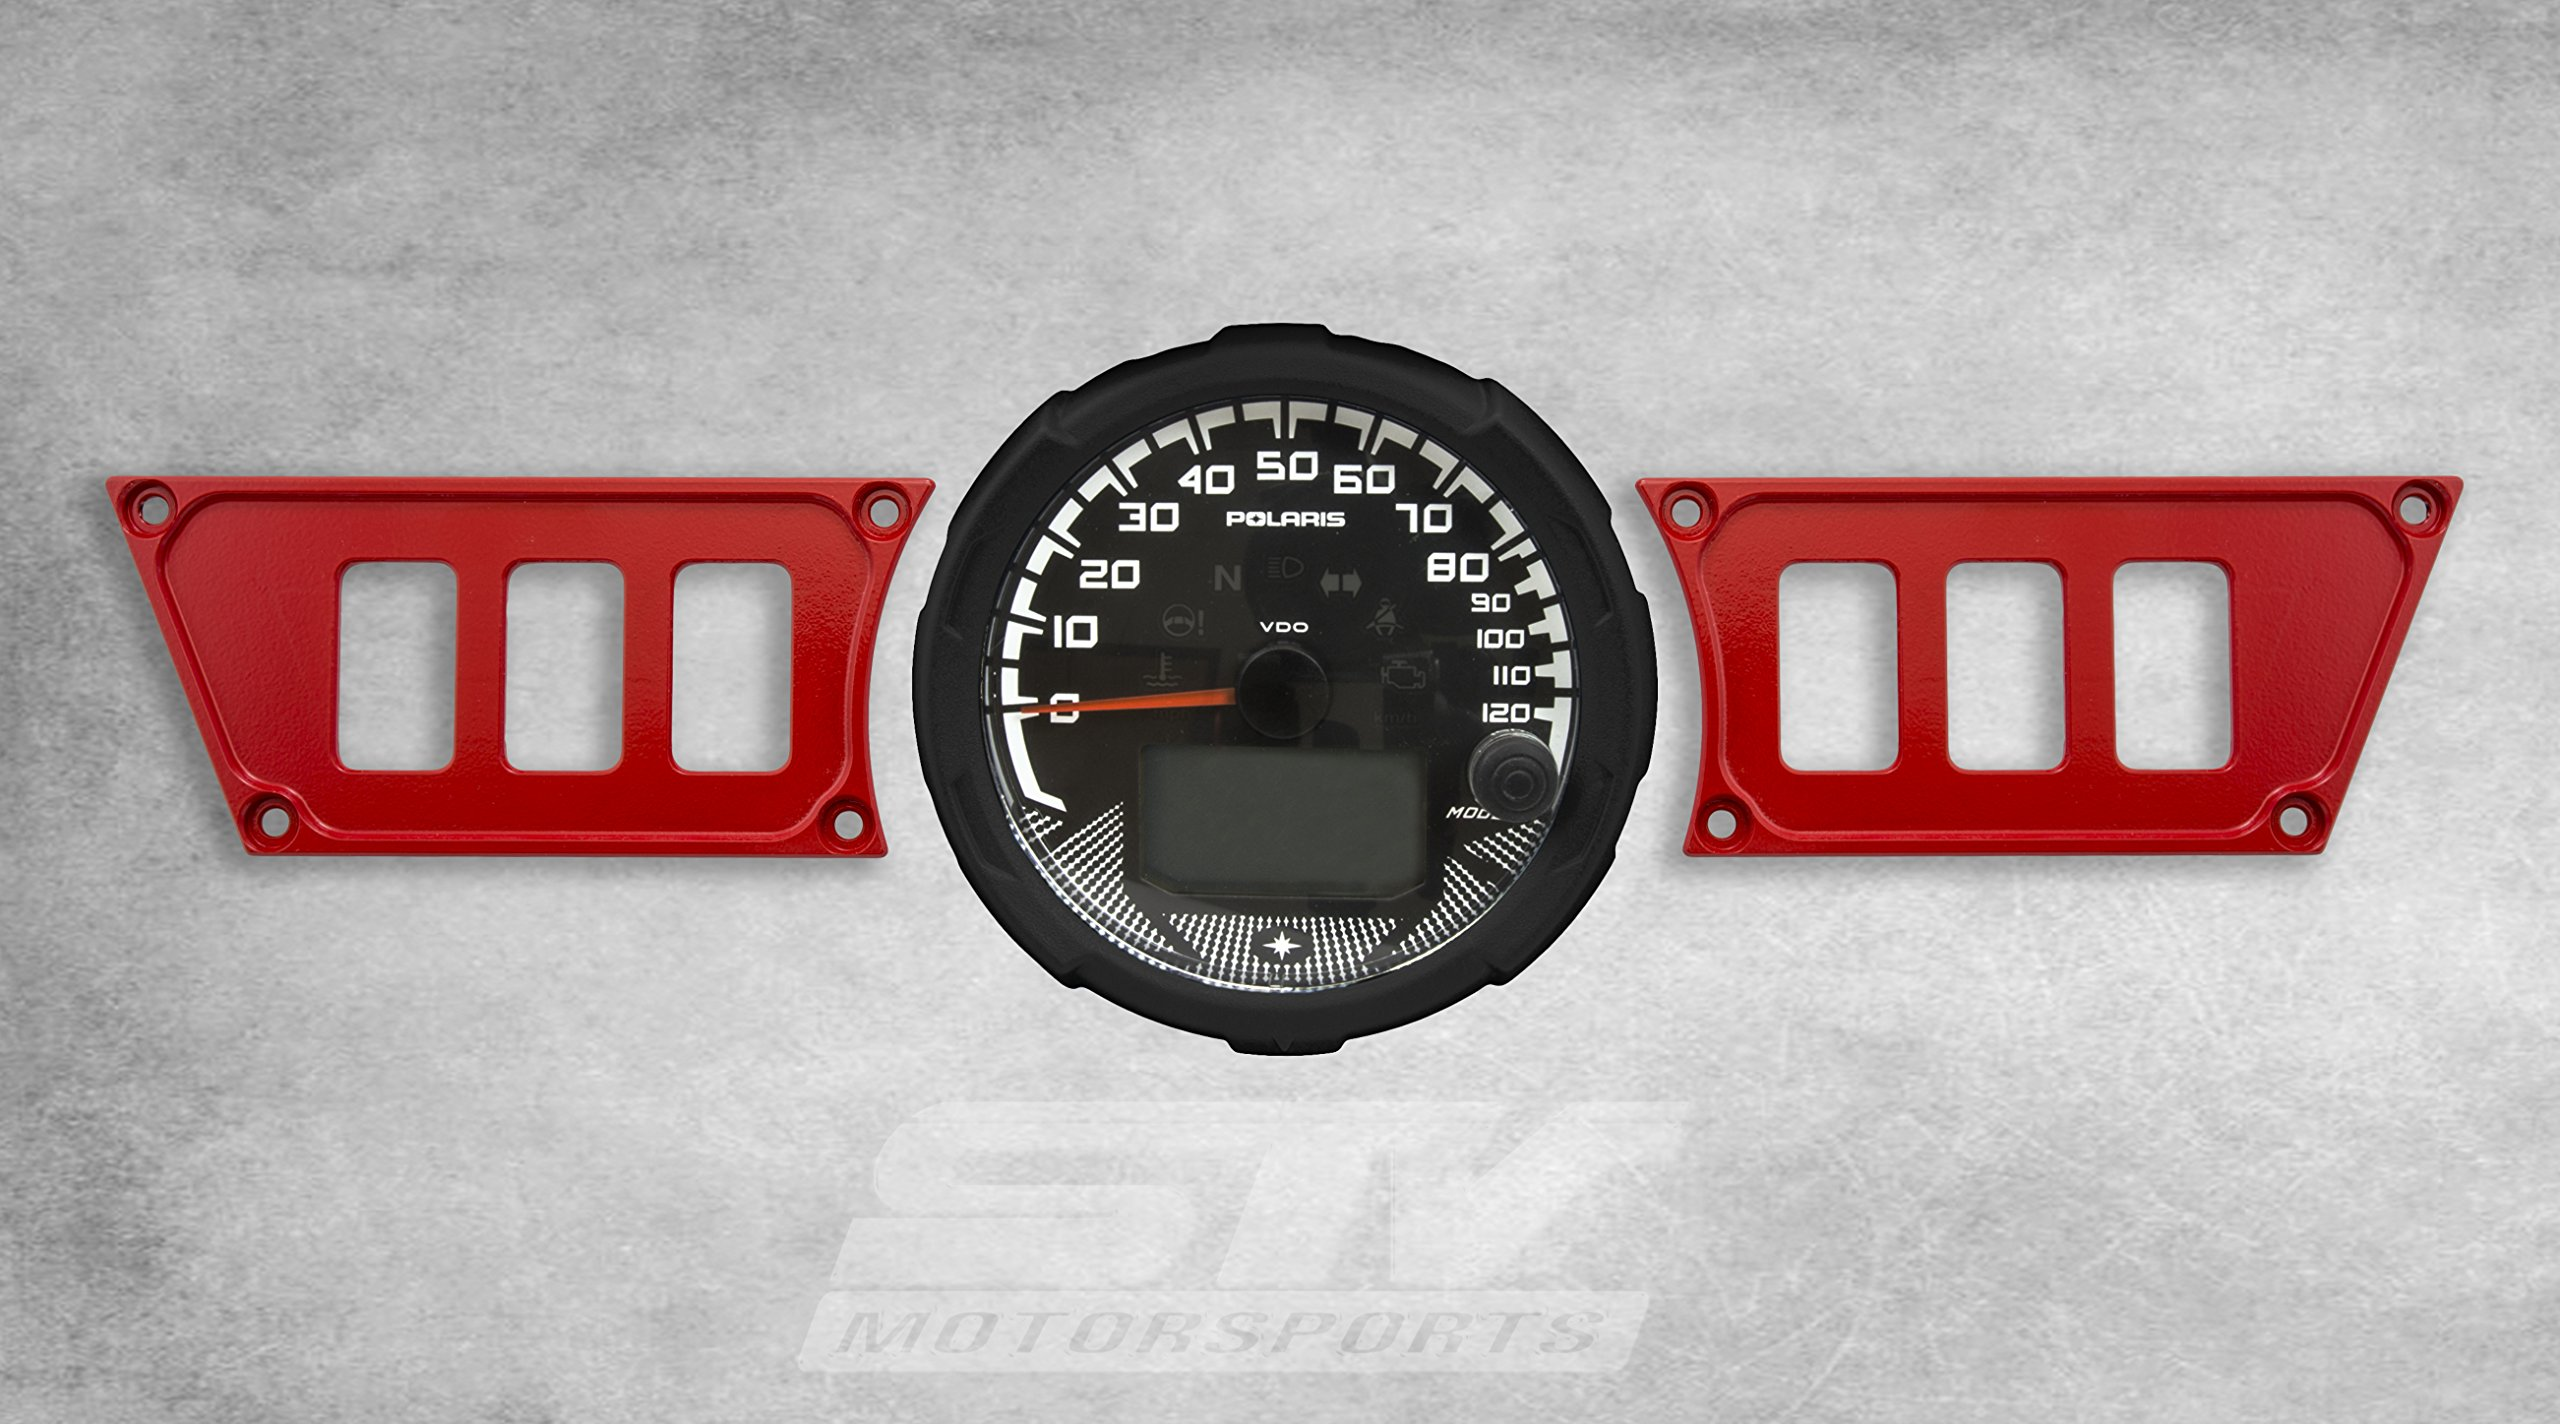 STVMotorsports Custom Aluminum Red Dash Panel for Polaris RZR XP 1000 with 6 Switch Openings (no switches Included) by STVMotorsports